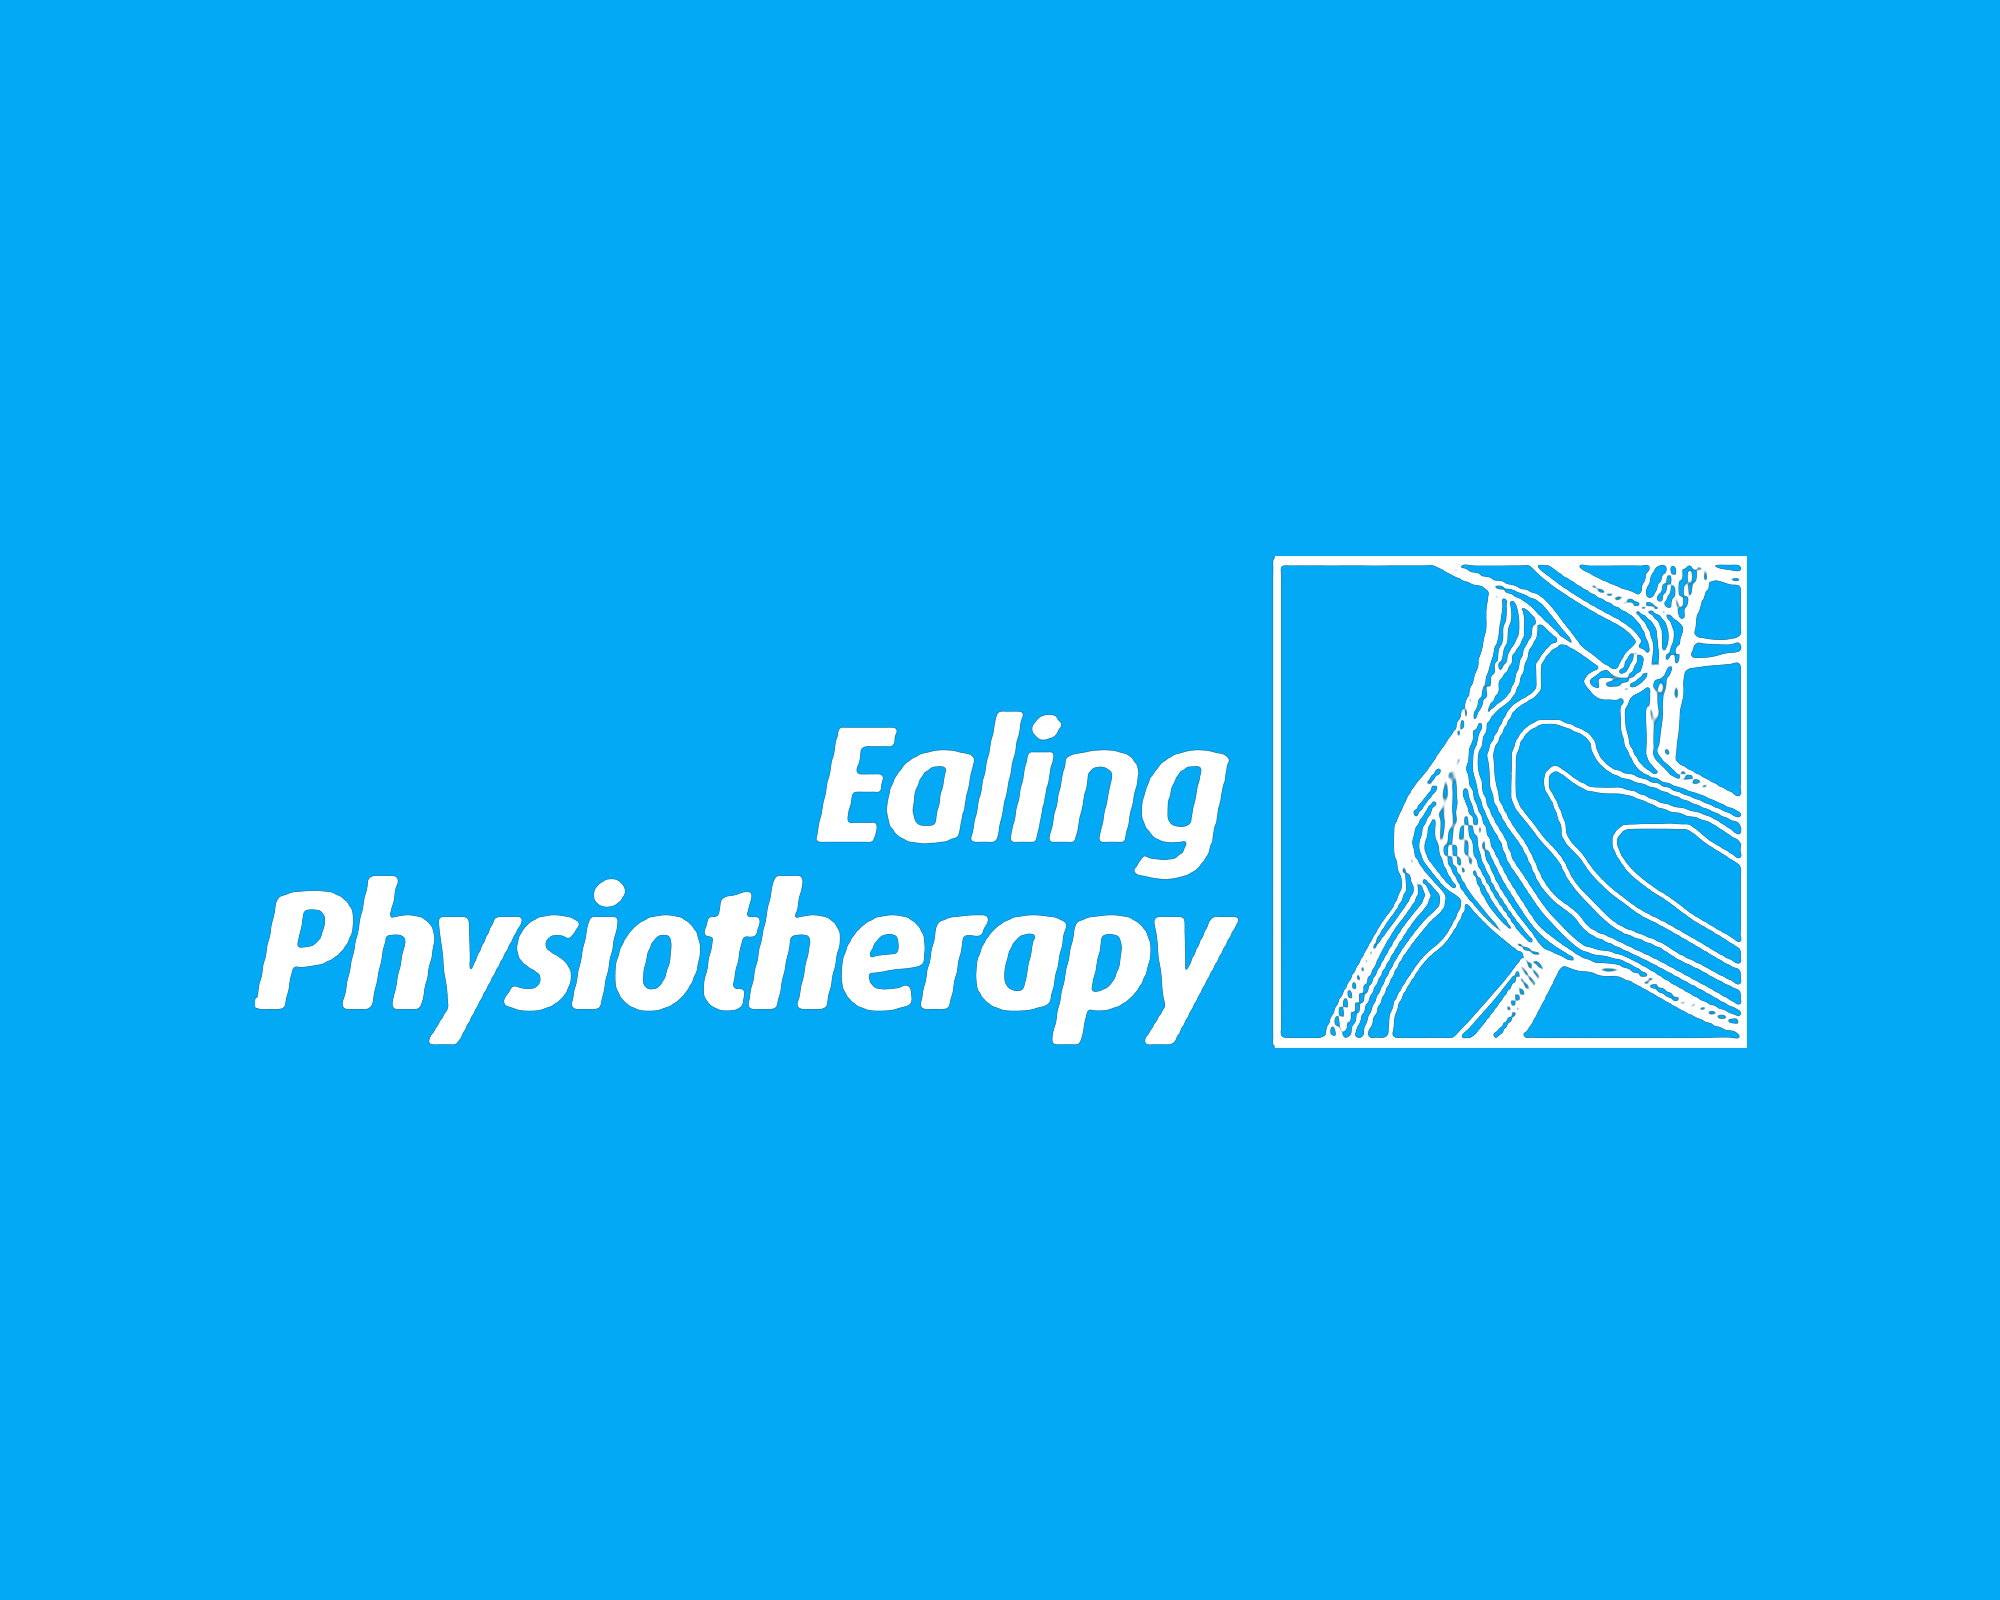 ealing physiotherapy Logo